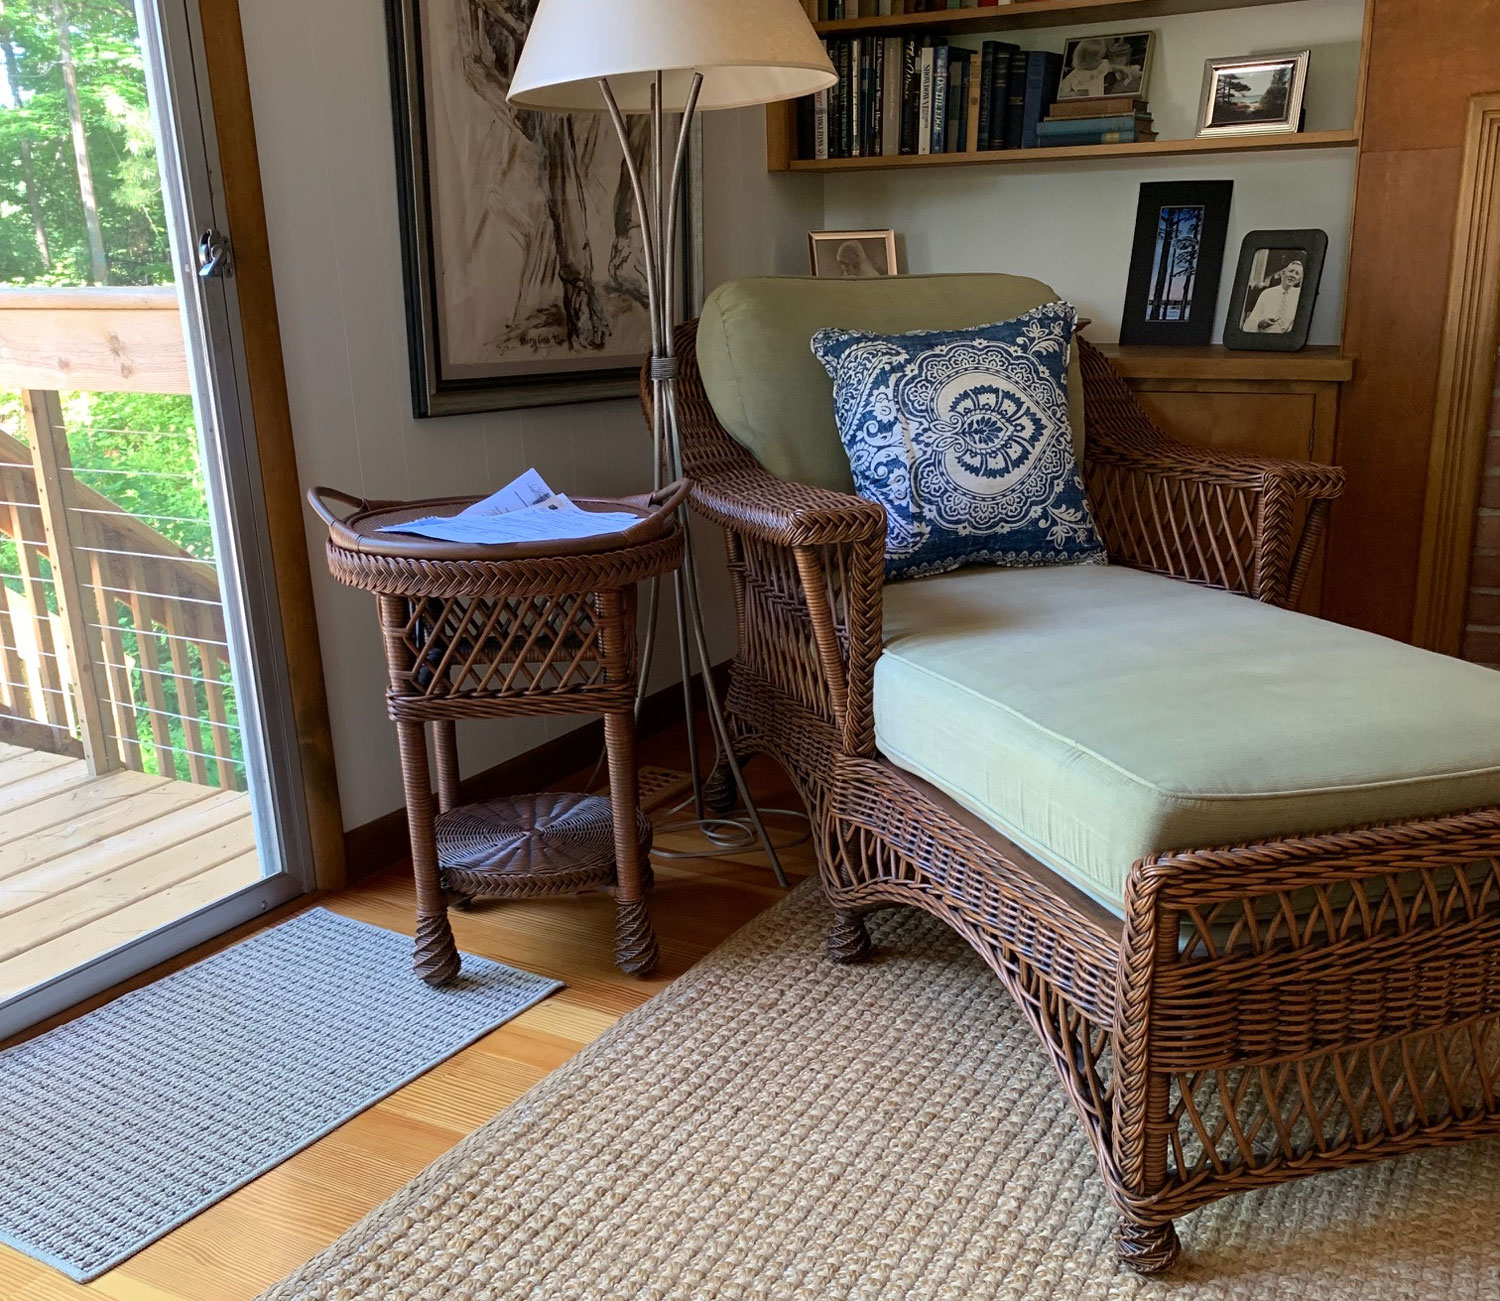 Image of a Wicker Chaise available at American Country Home Store